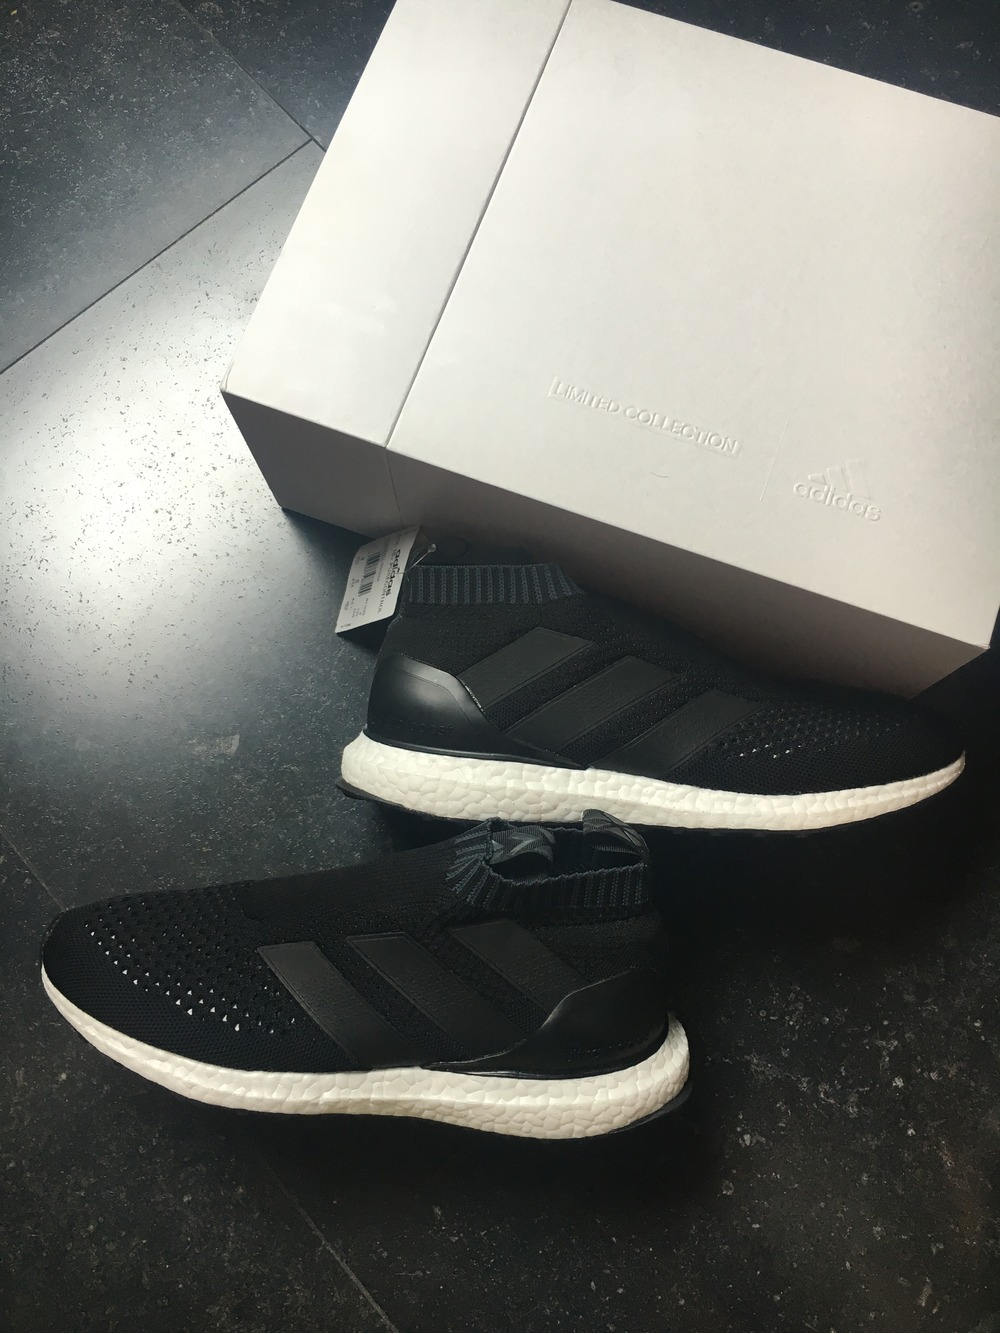 adidas Ultraboost Ultra Boost 3.0 Triple Black Silver Grey Ba8923 9